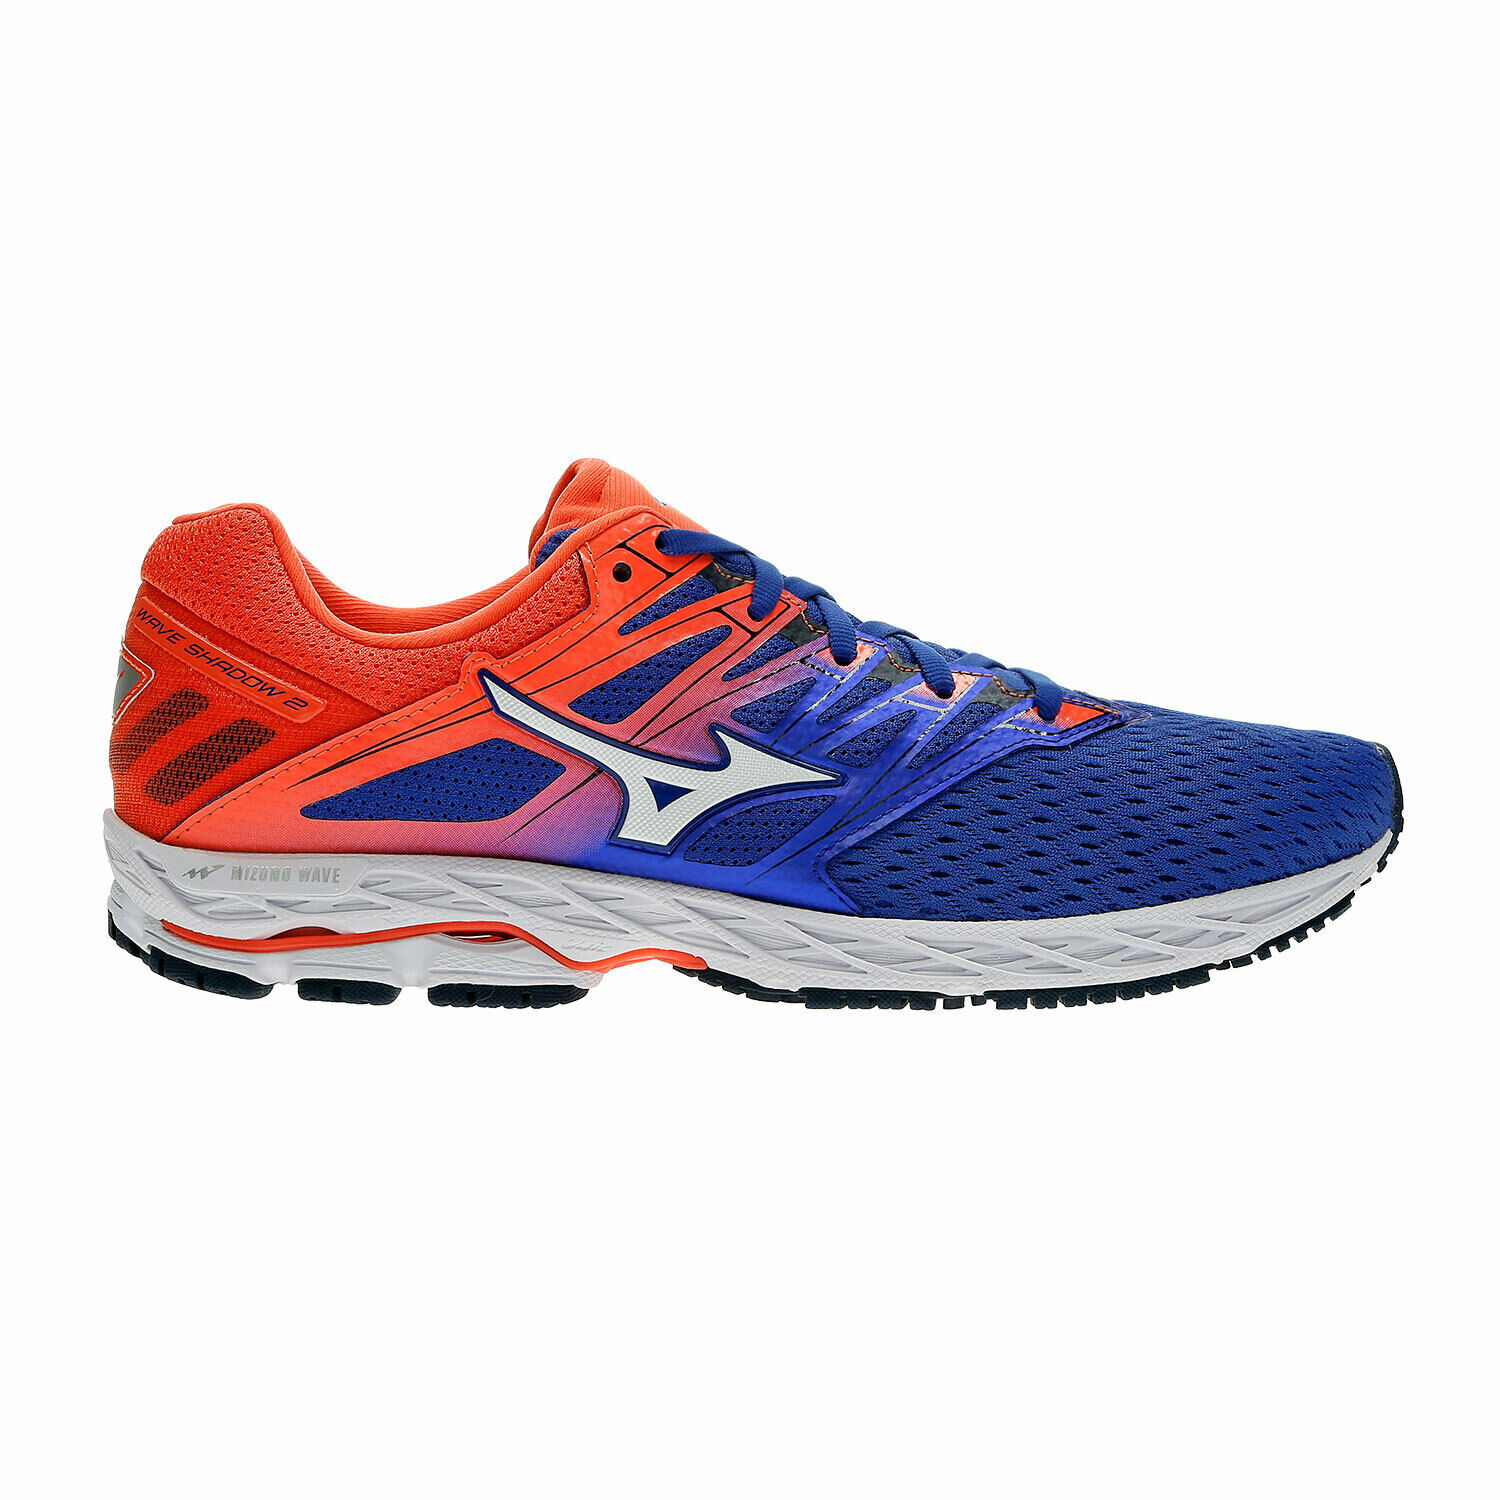 MIZUNO WAVE SHADOW 2 RUNNING SHOES MAN AIRY CUSHIONED PROFESSIONAL